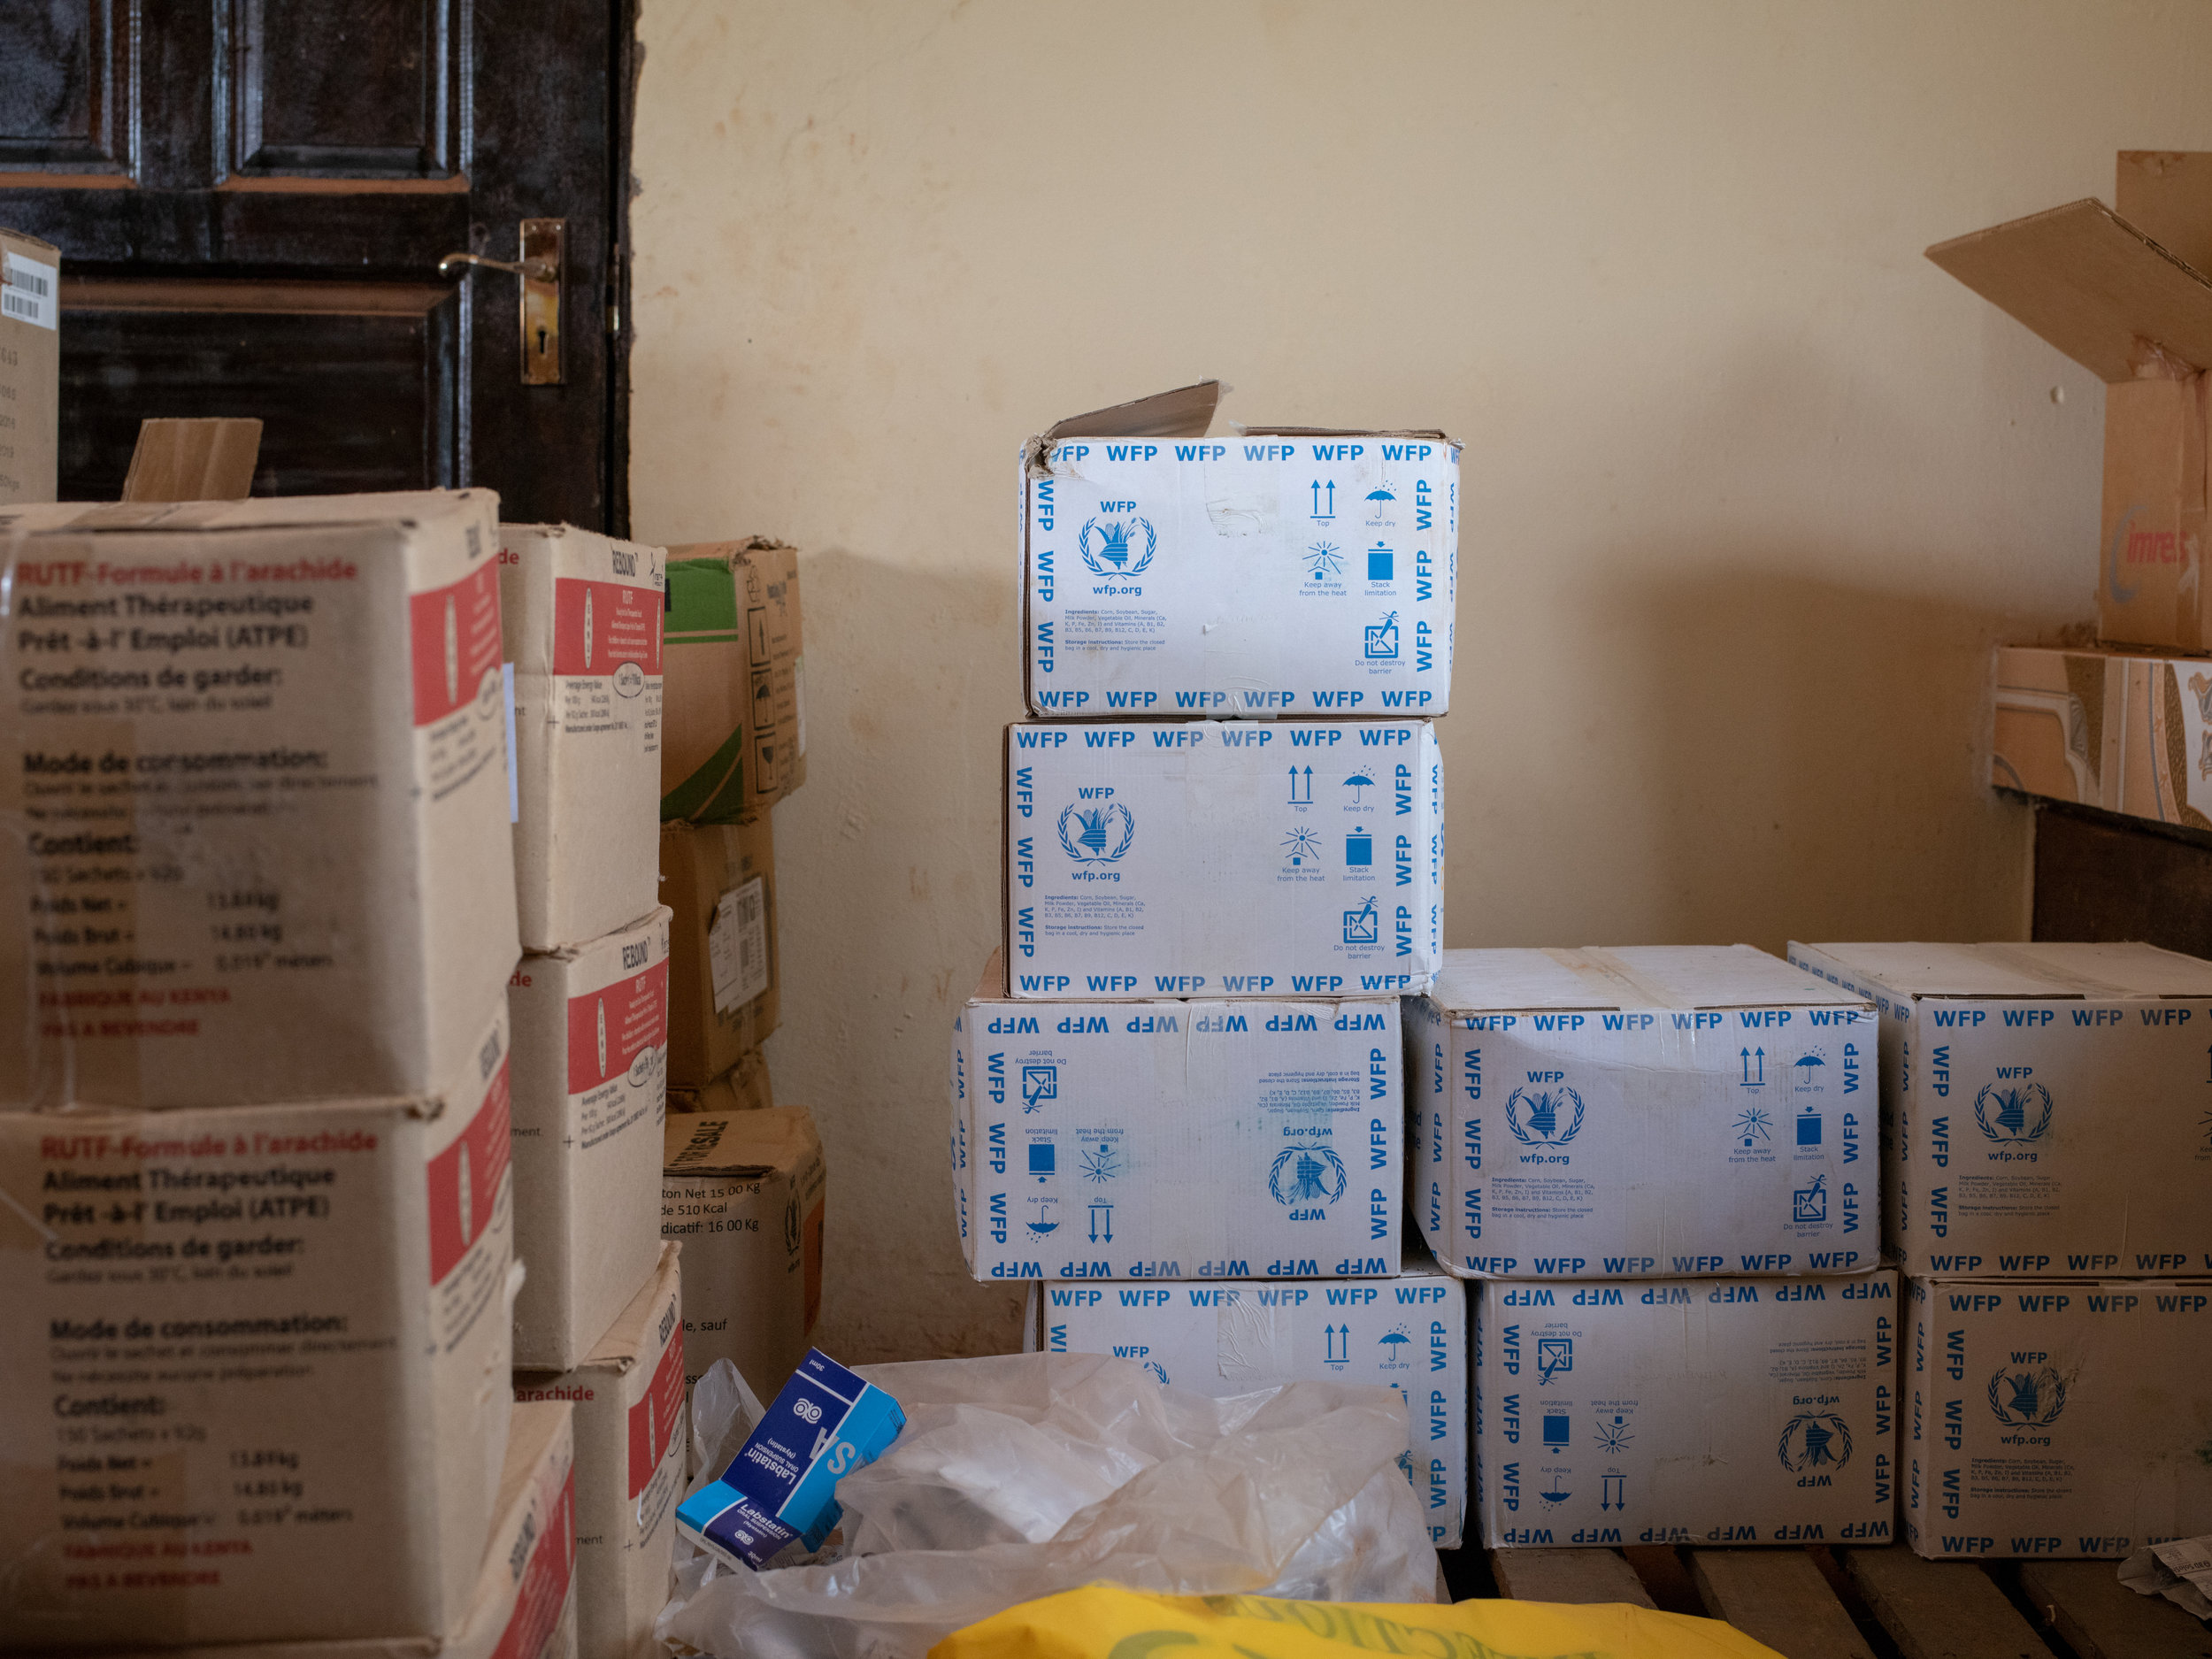 Nutrition supplements, but no one to distribute them